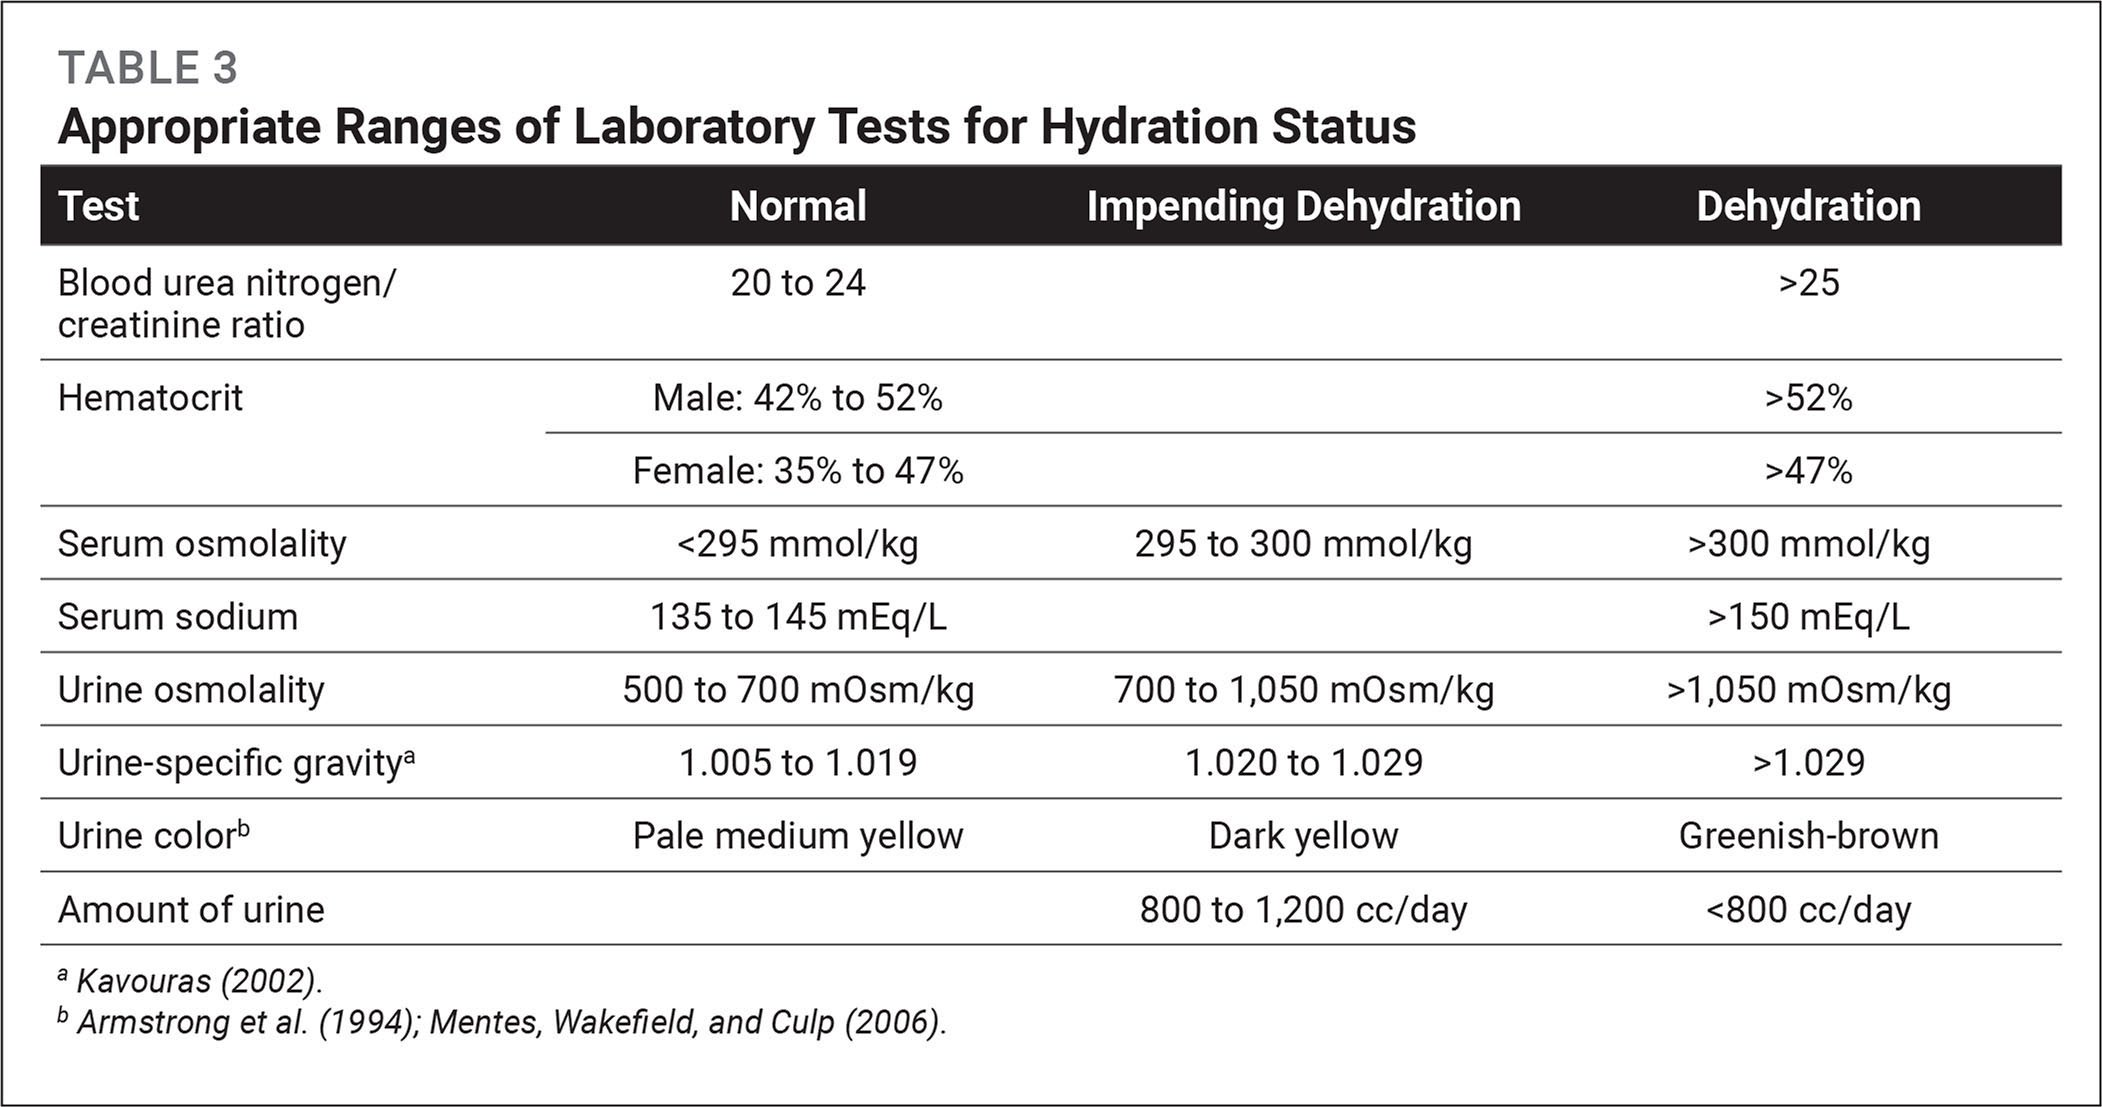 Appropriate Ranges of Laboratory Tests for Hydration Status